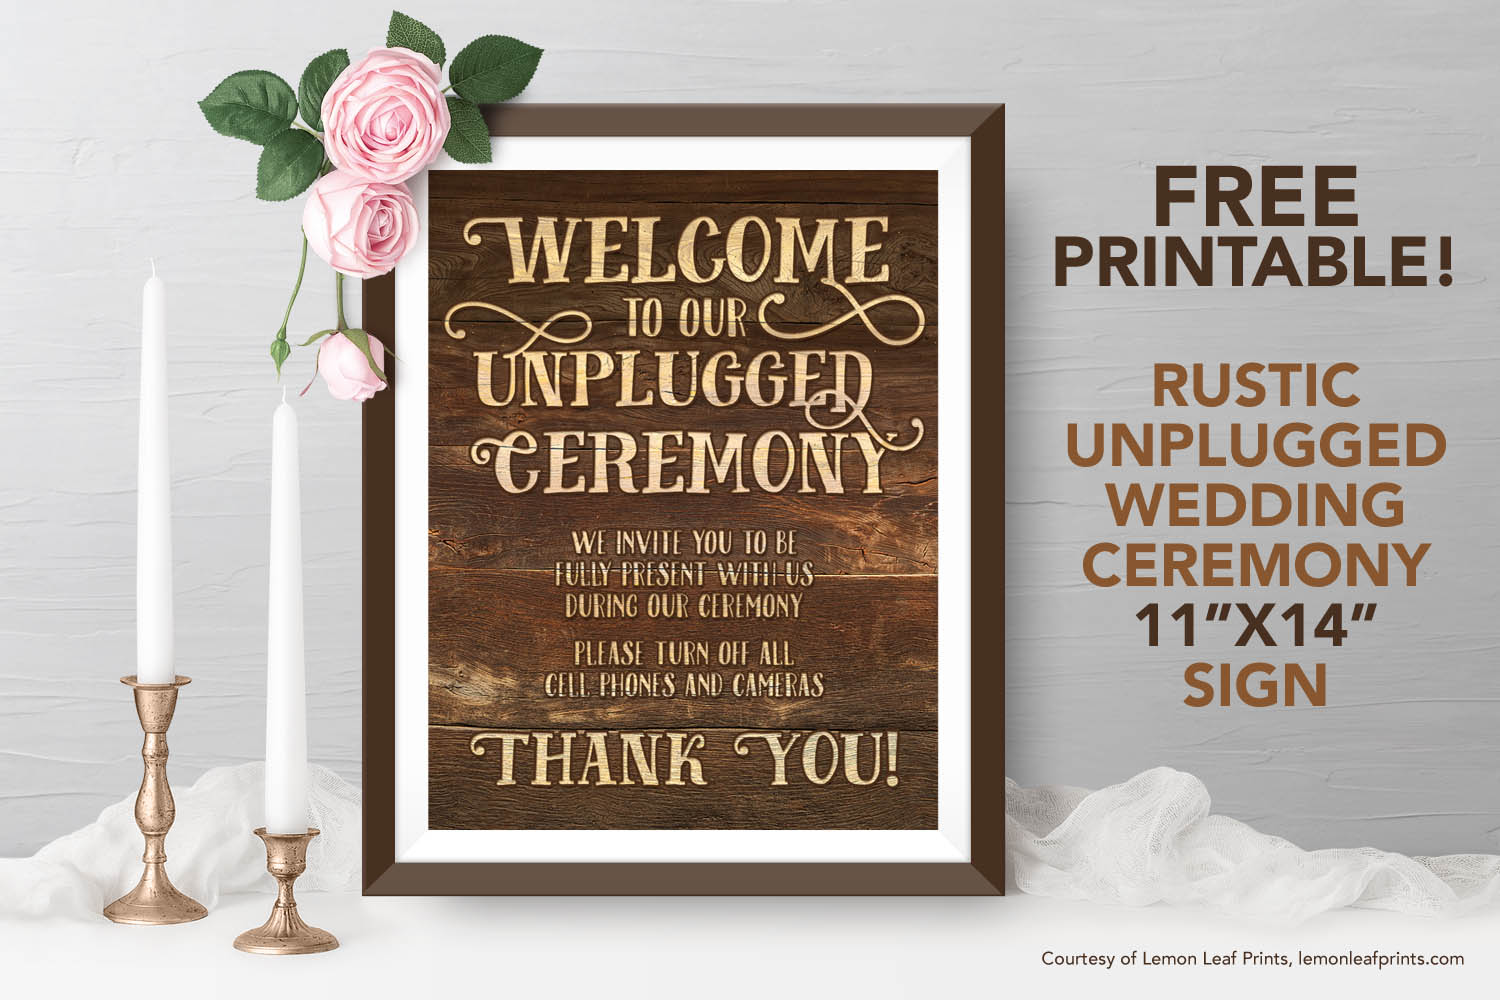 photograph regarding Wedding Sign Printable referred to as Free of charge Printable - Rustic Unplugged Marriage ceremony Rite Indicator